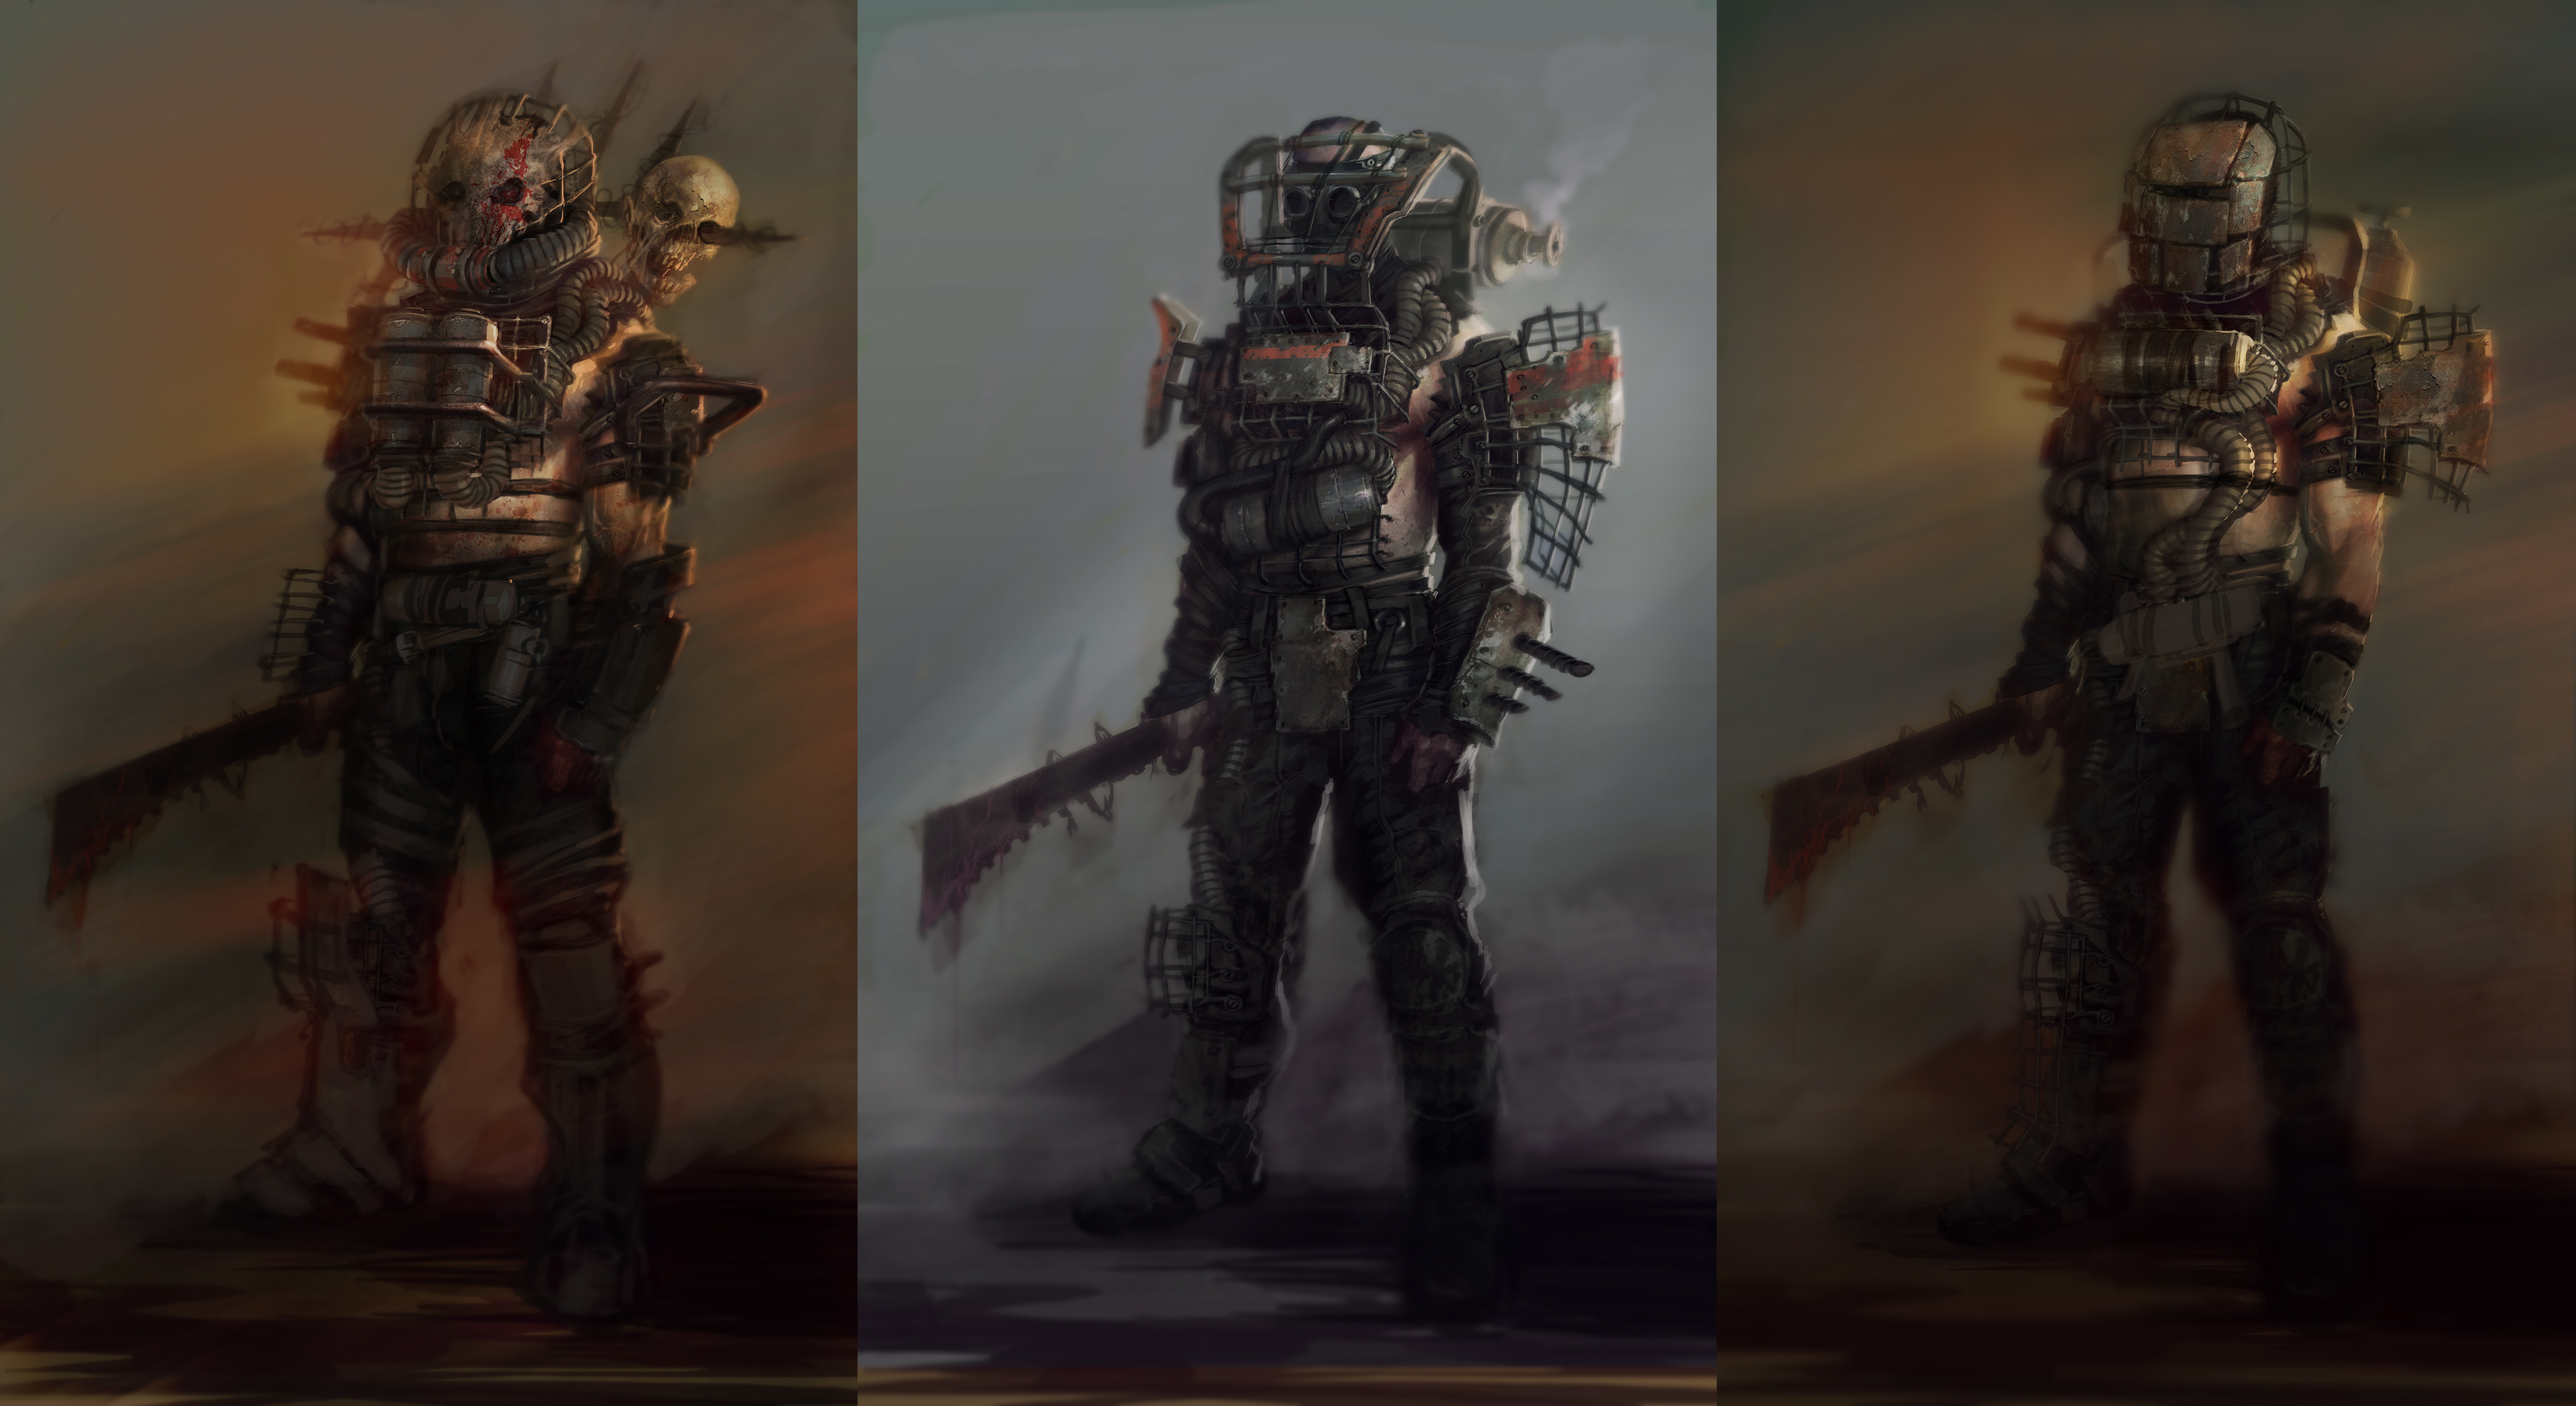 Fallout 4 S Concept Art Is Wallpaper Worthy Polygon